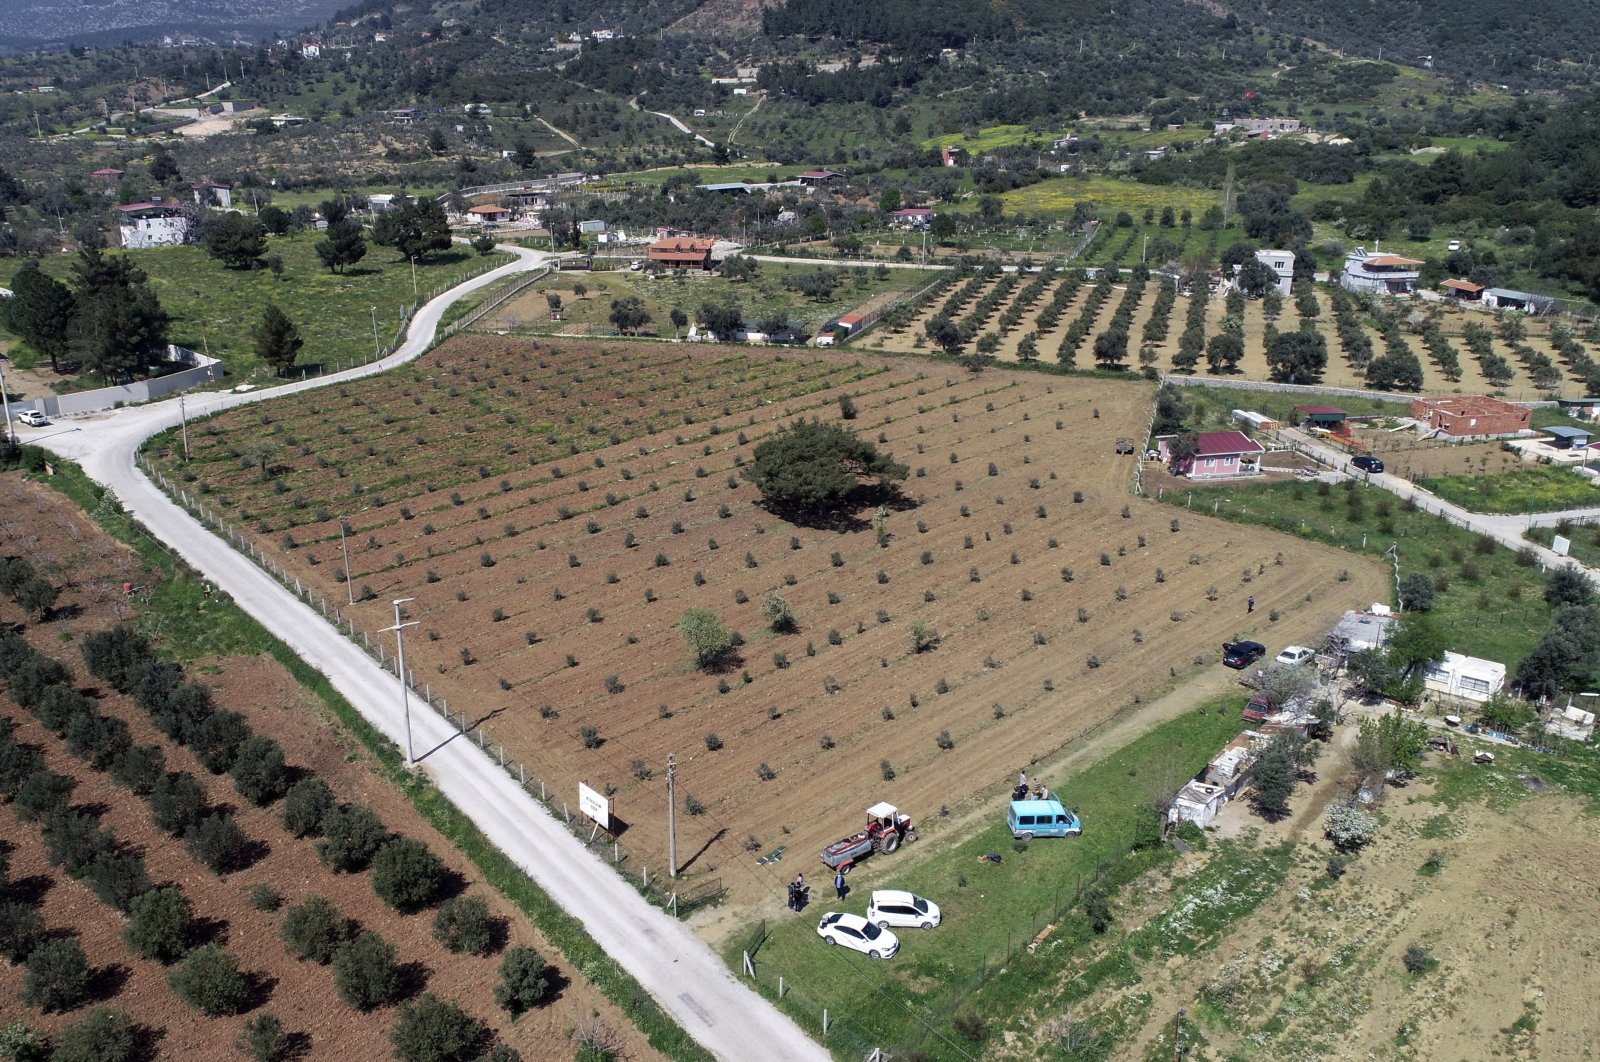 Farmland where members of the Buca municipality have planted vegetables in anticipation of prolonged coronavirus restrictions, Izmir province, western Turkey, April 13, 2020. (AP Photo)